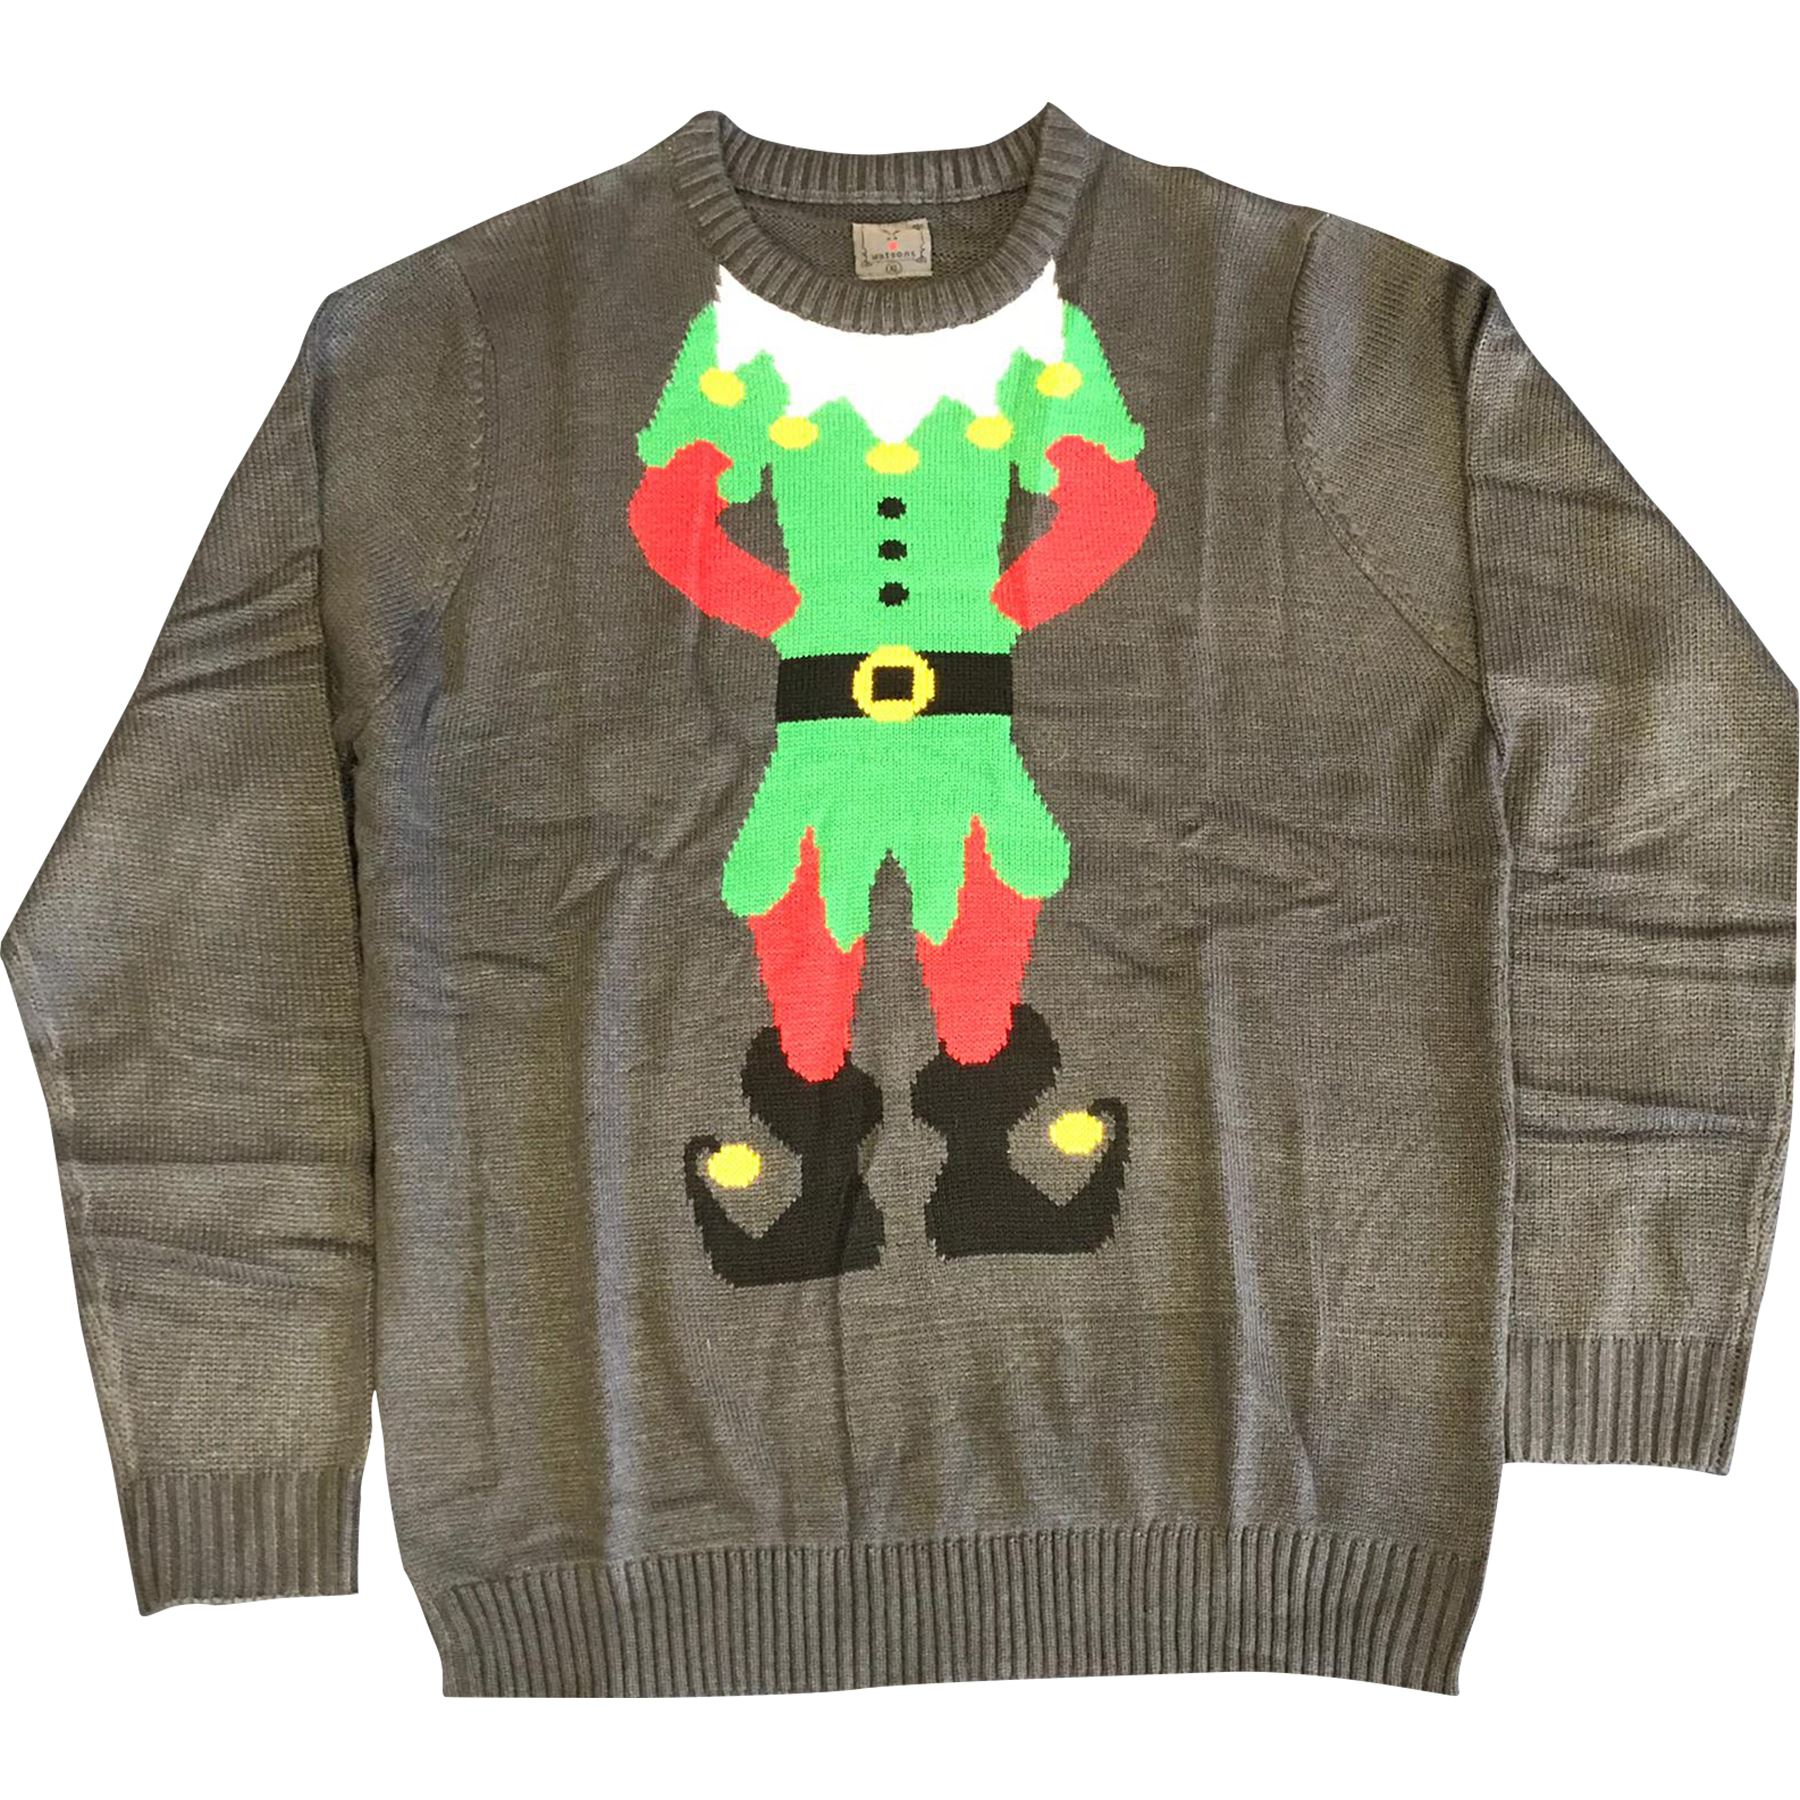 Noroze Mens Premium Novelty Knitted Christmas Sweater Elf Jumpers